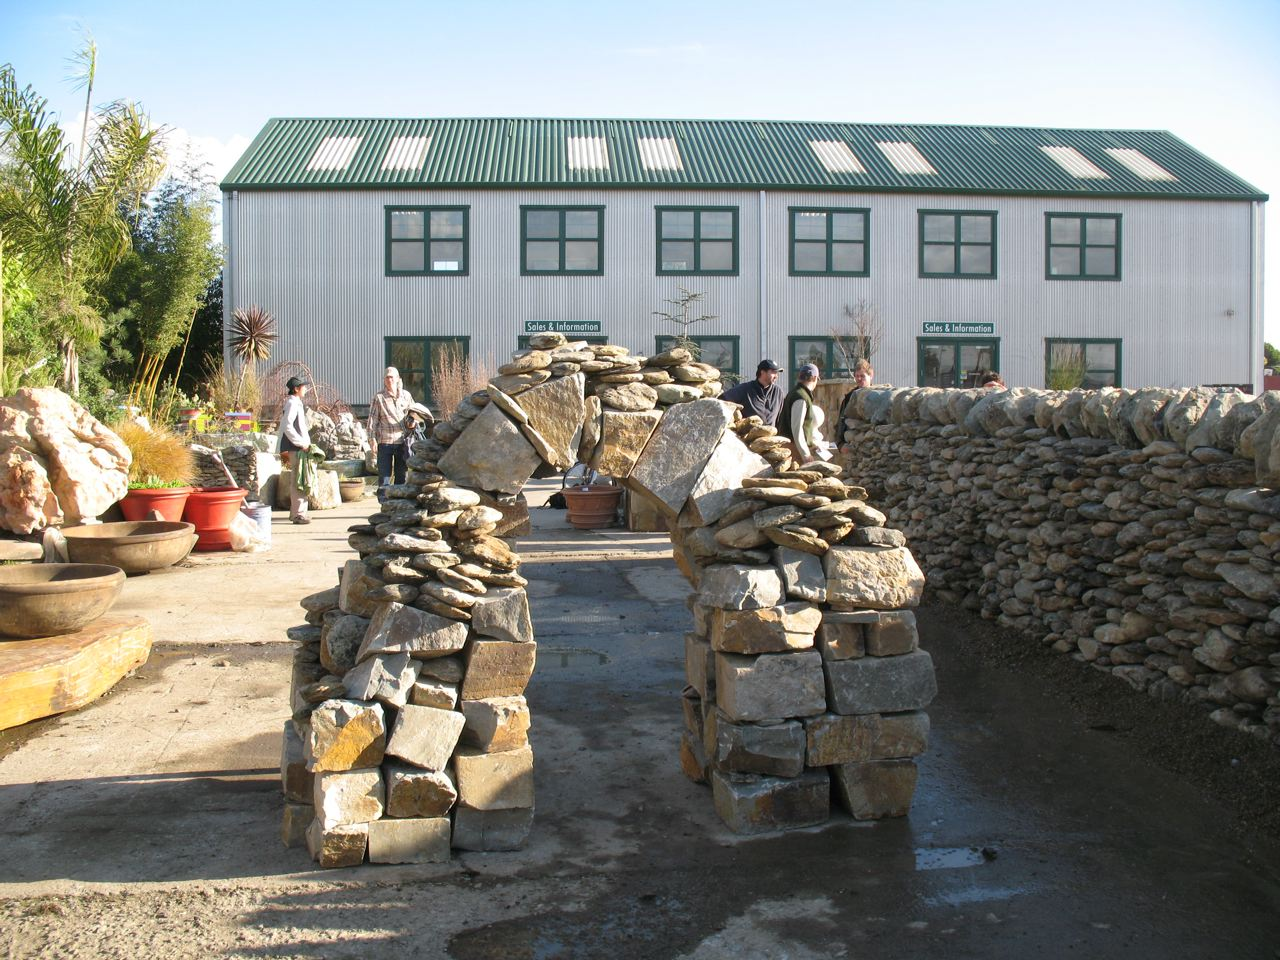 San francisco dry stone walling workshop dswac for American soil